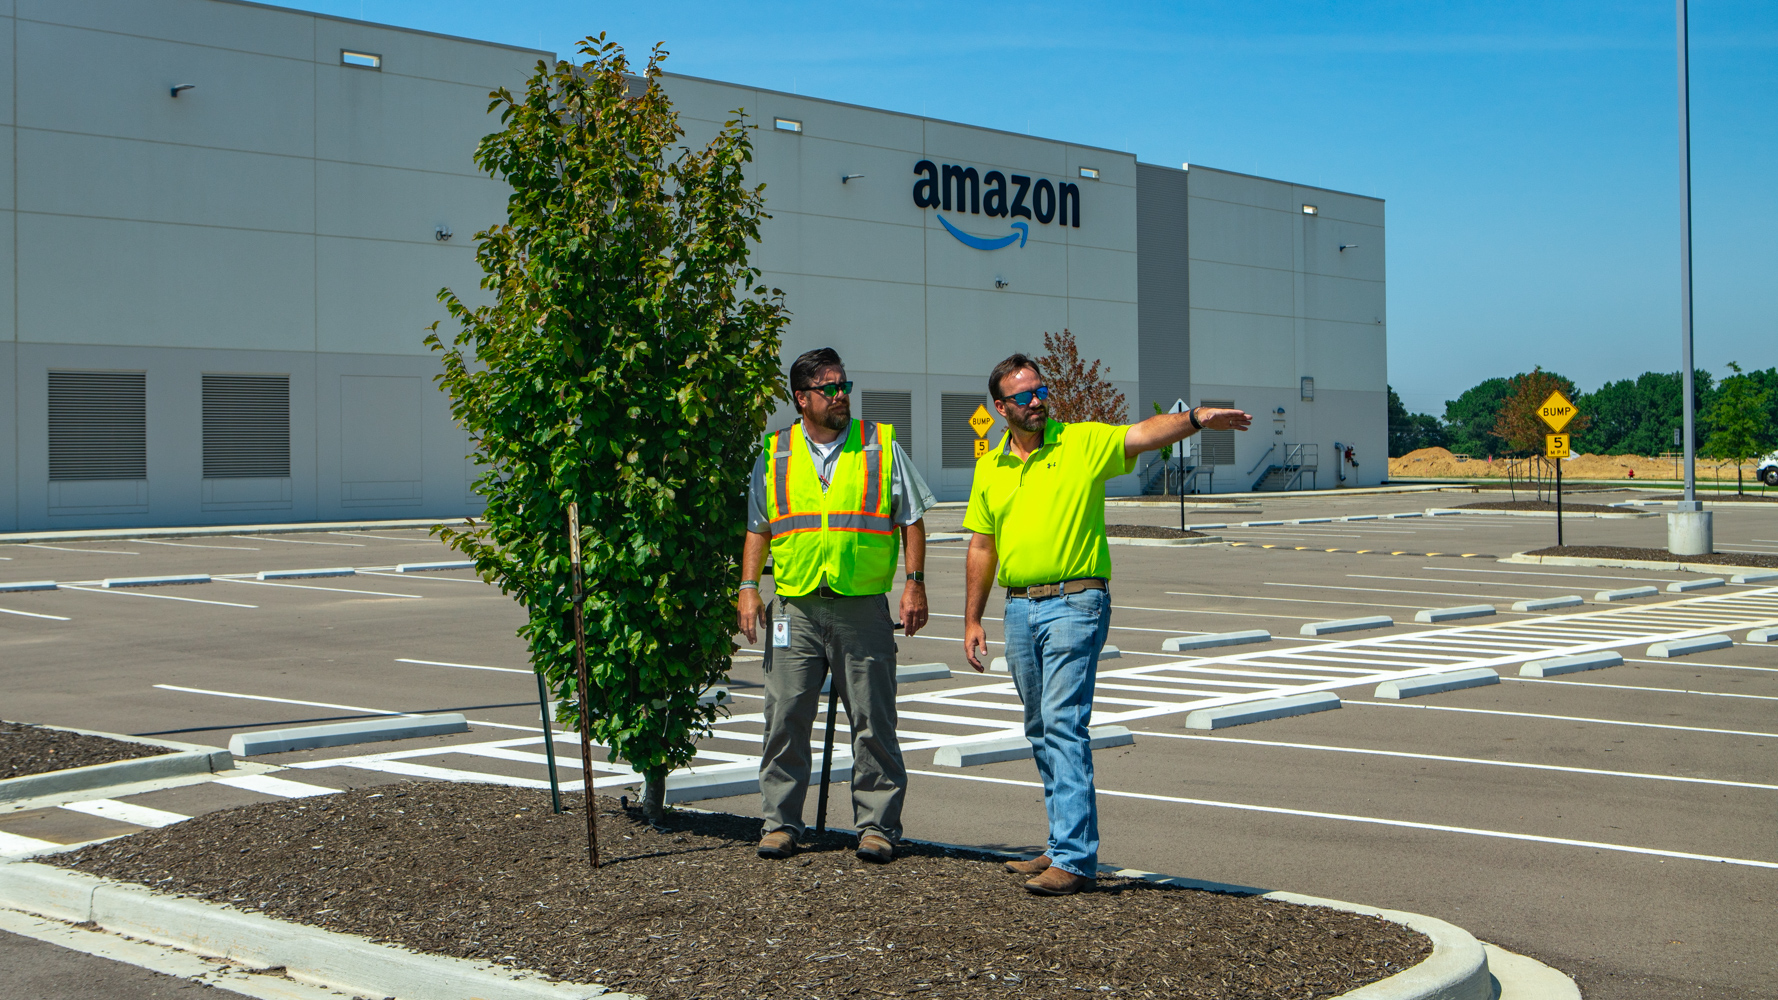 Commercial landscaping Account Manager and Company Manager inspecting the Amazon fulfillment property with the client